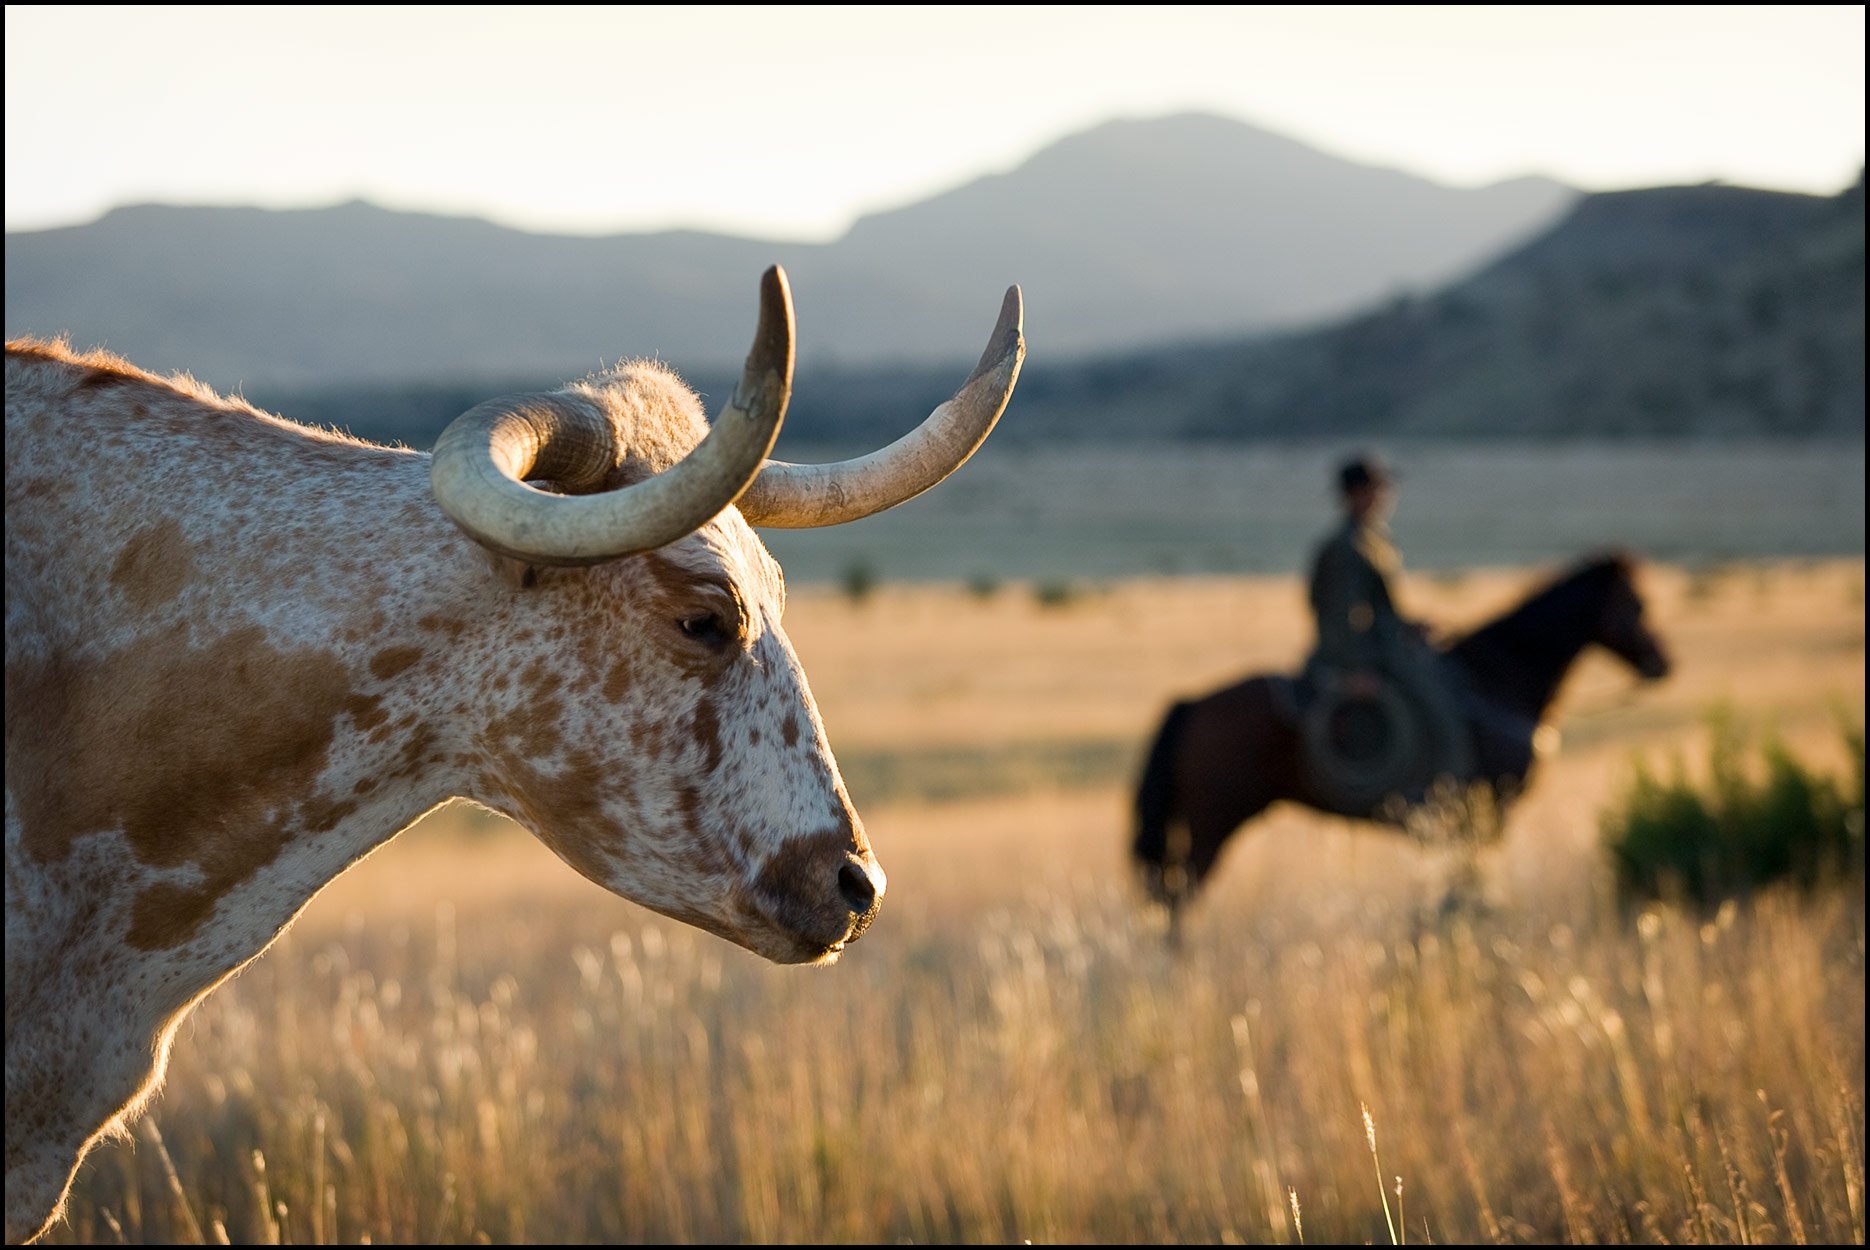 A longhorn steer in the foreground eyes a cowboy on horseback on a ranch in the Davis Mountains of west Texas.